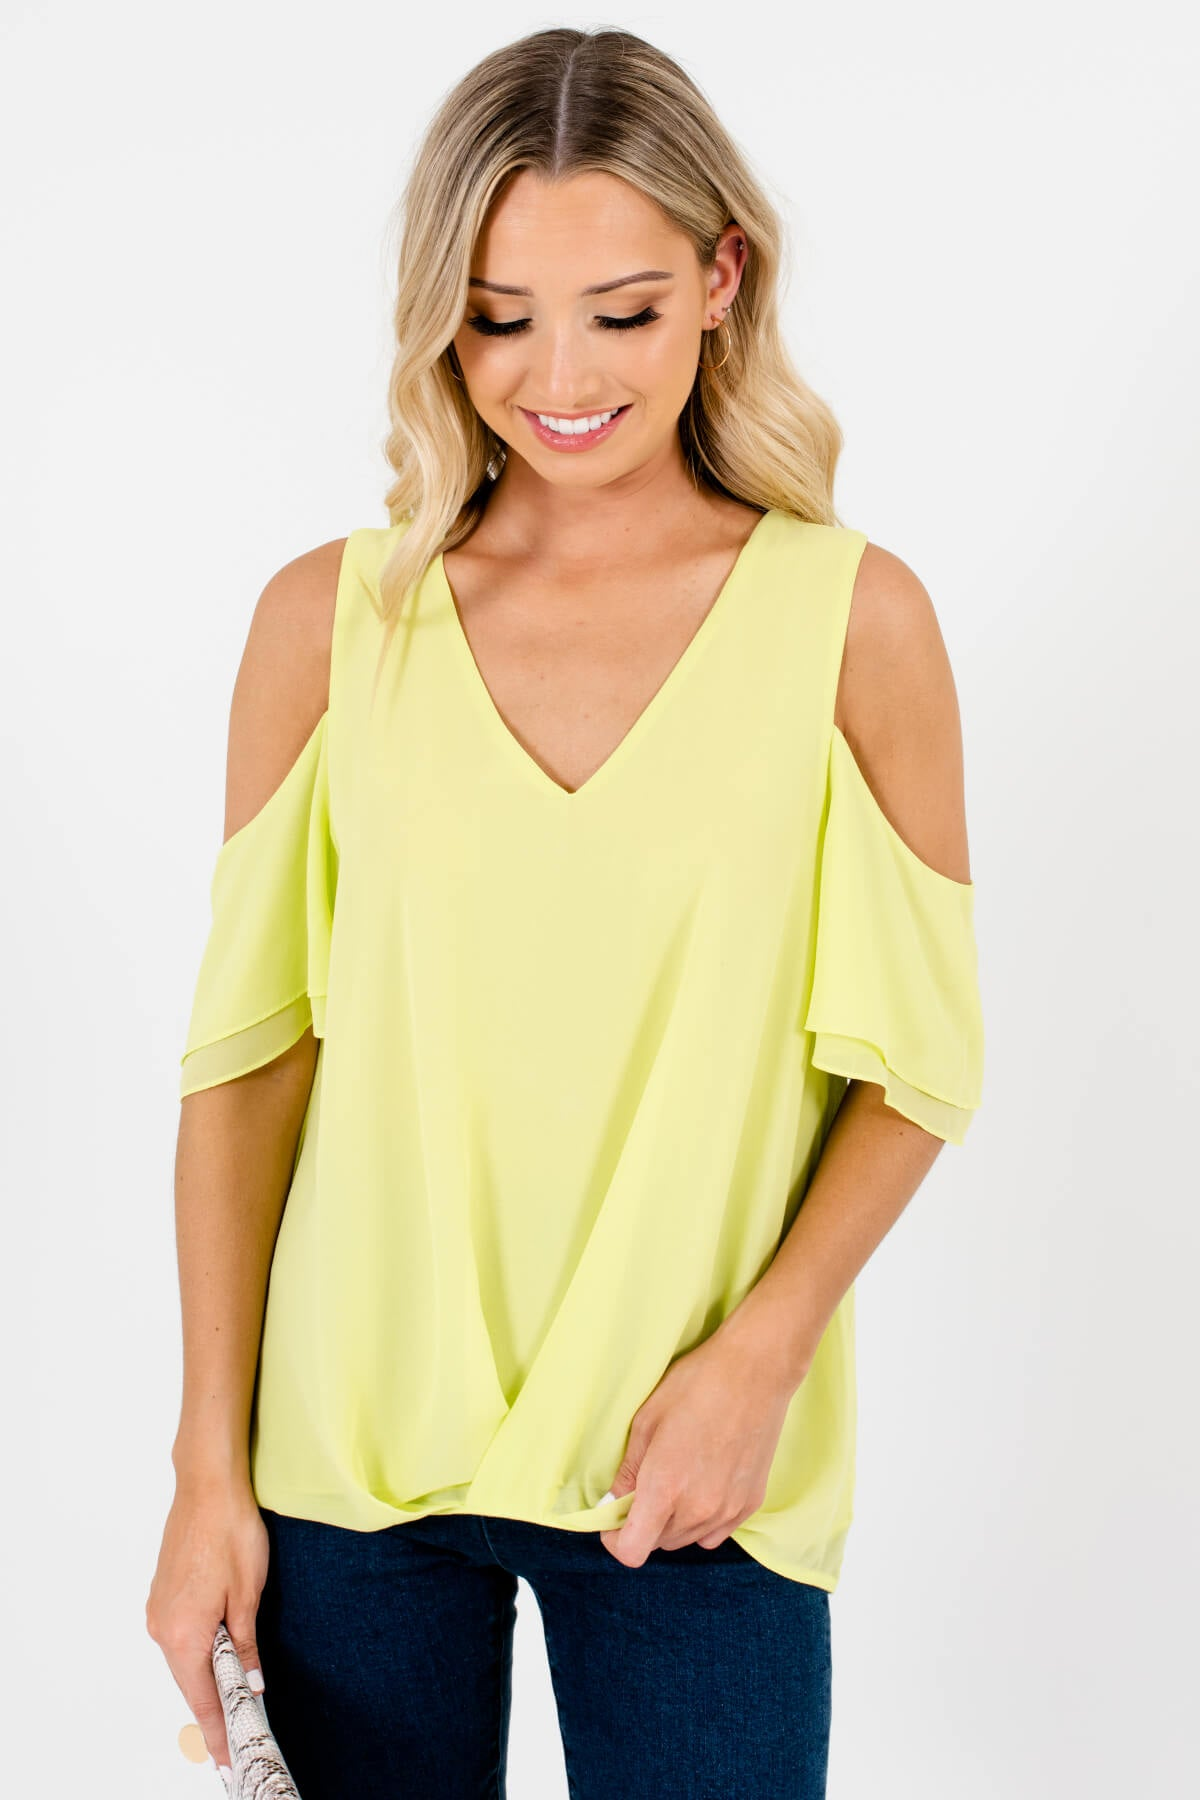 Neon Green Cold Shoulder Style Boutique Tops for Women